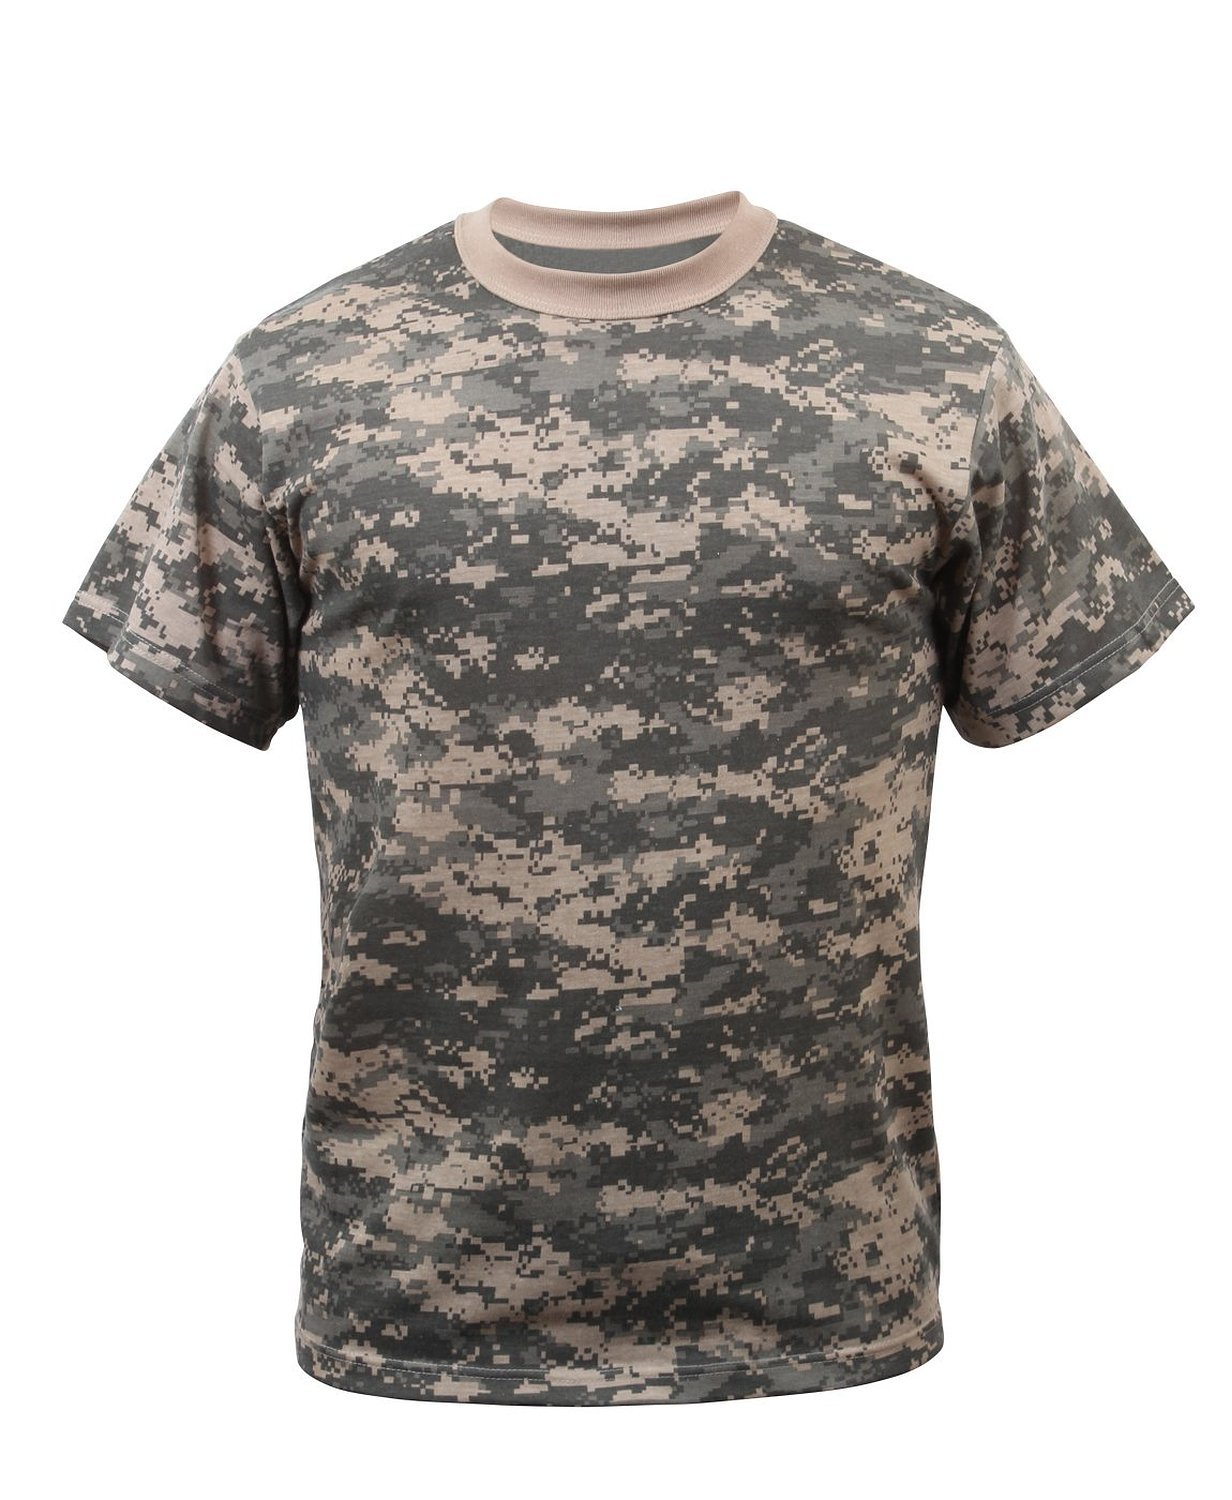 Rothco T-Shirt/Acu Digital Camo - XX-Large RSR Group Inc 613902637900 rco-6379_ACU Digital_2X